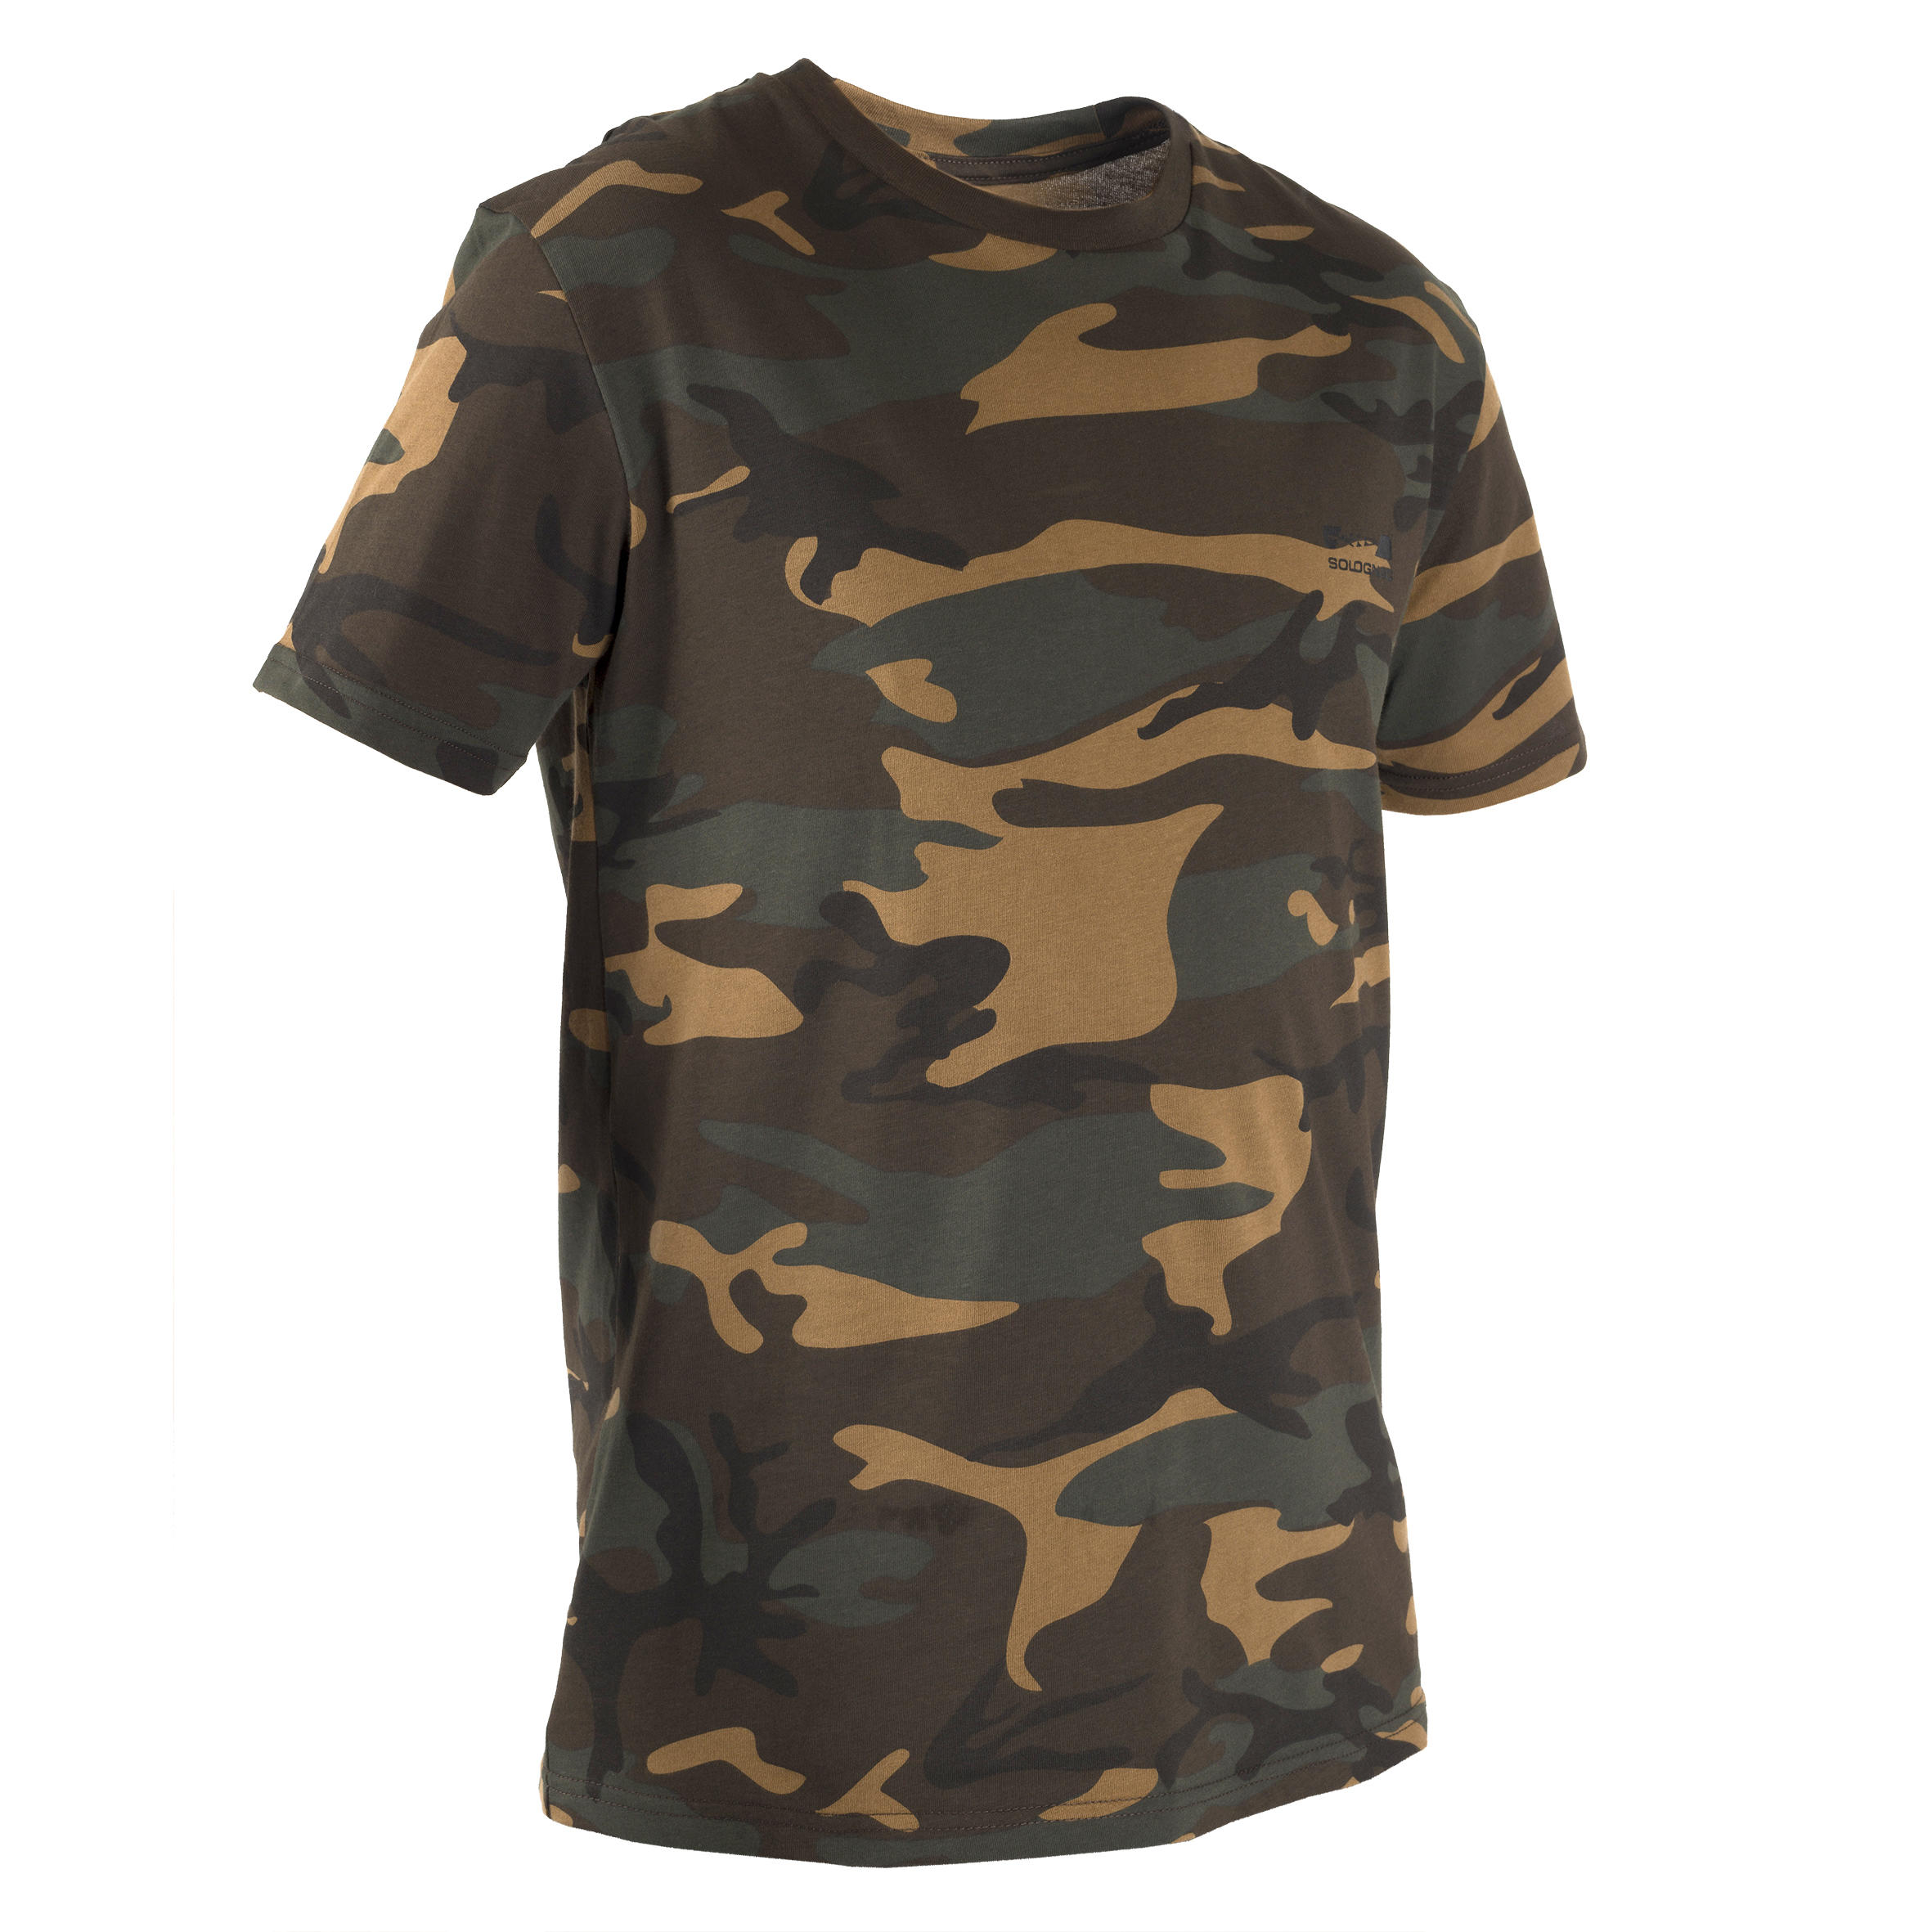 Steppe 100 t-shirt camouflage WL green